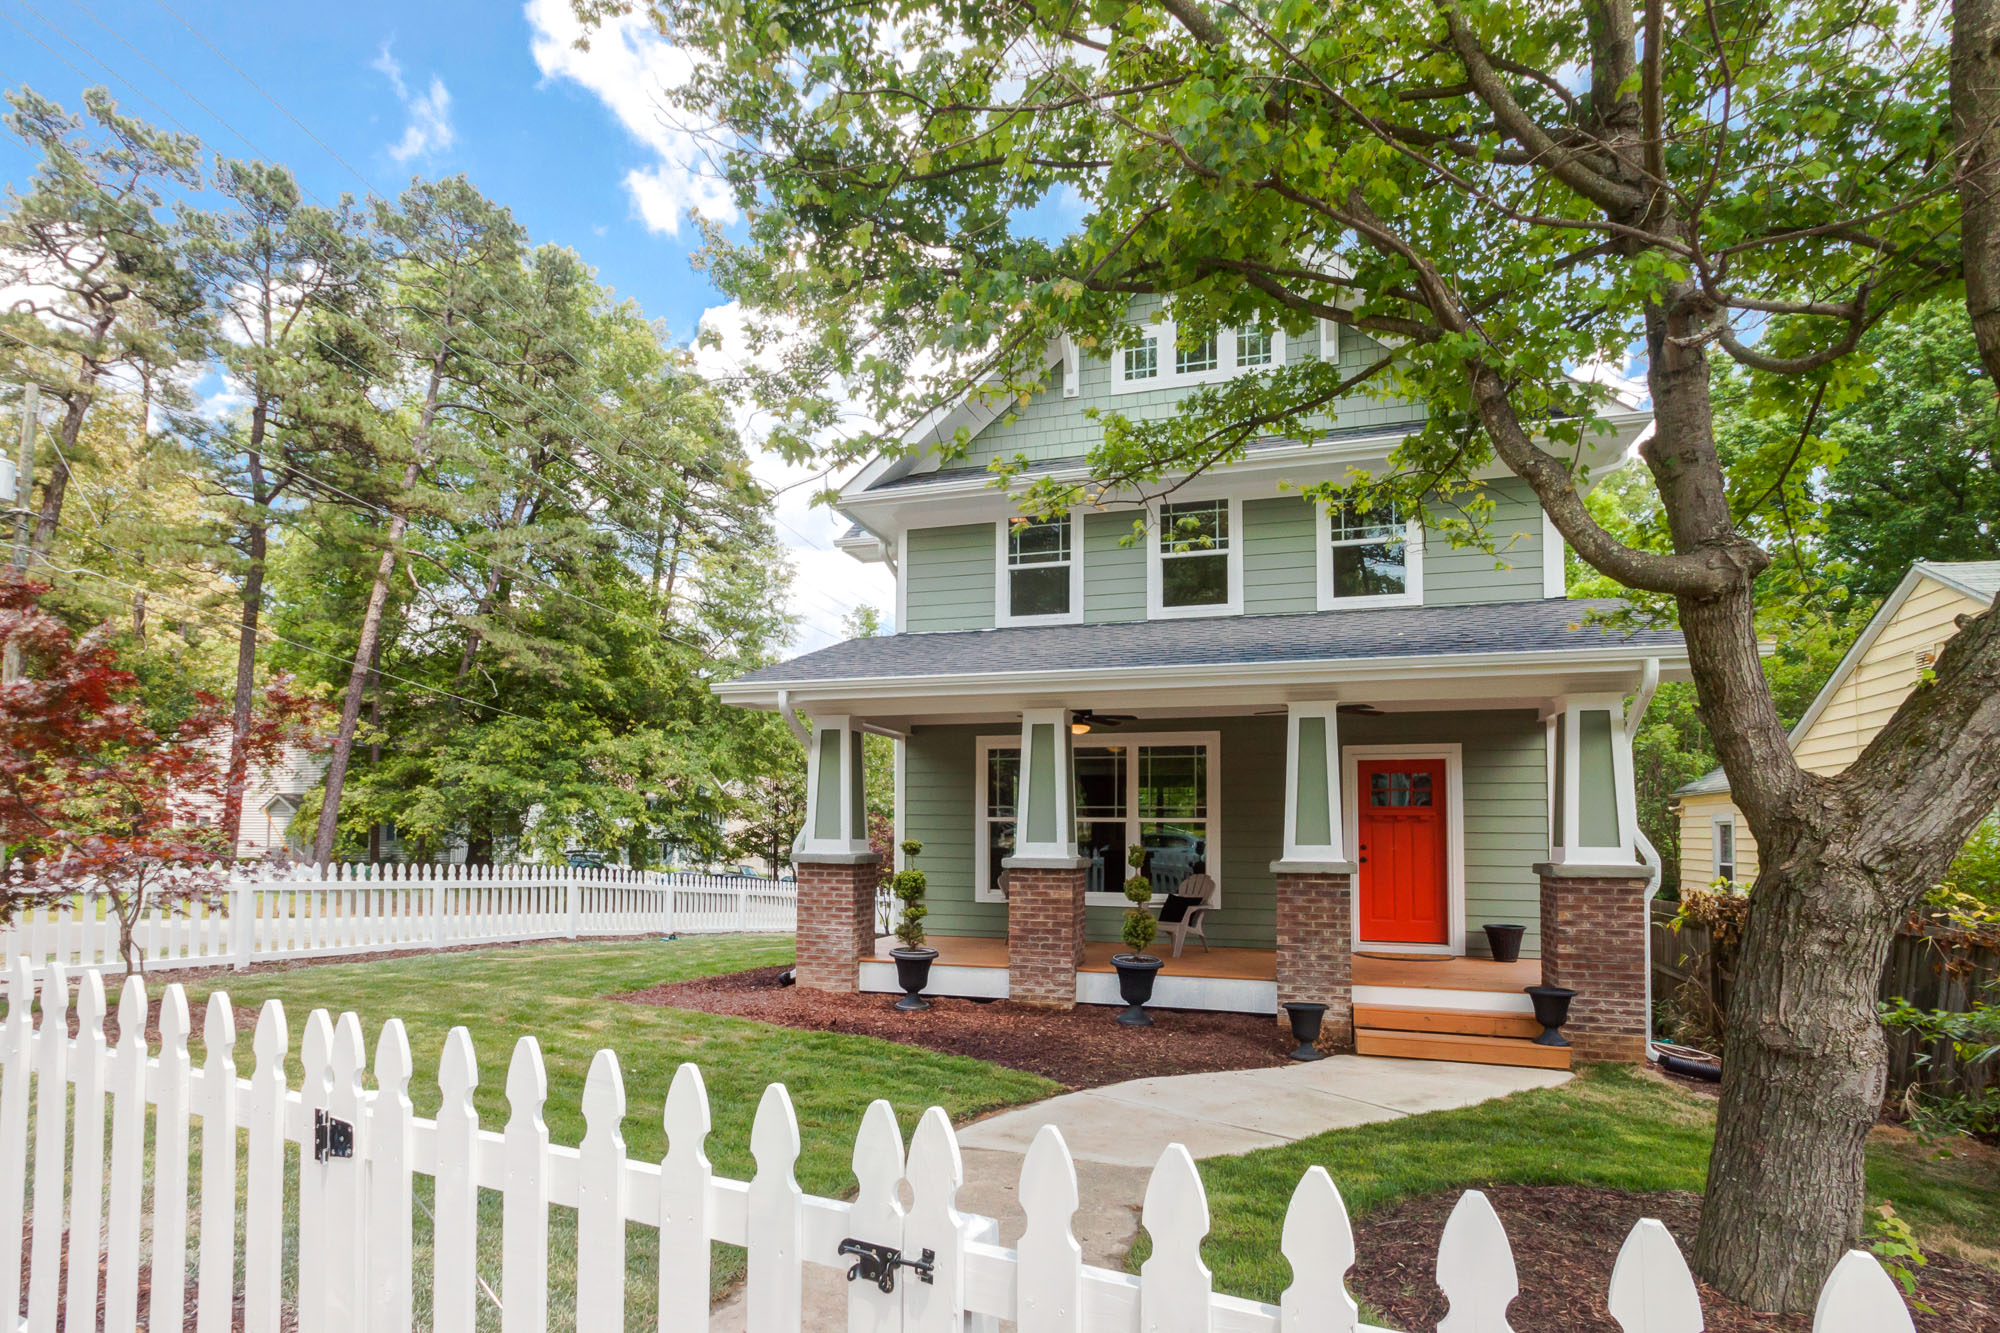 Real Estate Photography: A white picket fence surround this craftsman two story home in Durham, NC